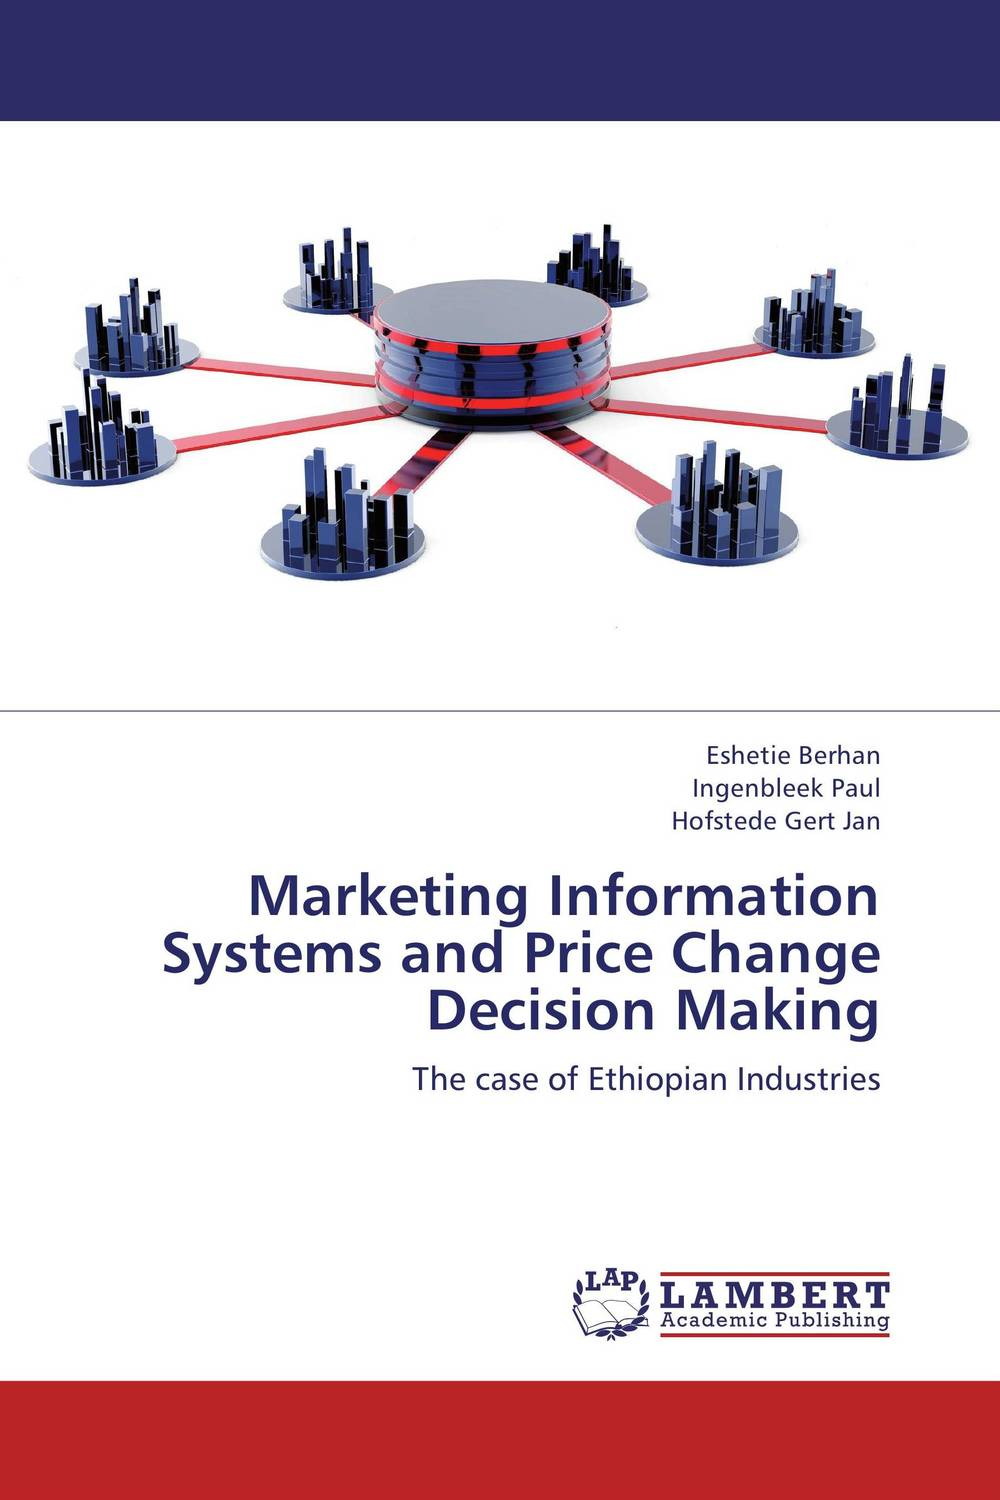 Marketing Information Systems and Price Change Decision Making mark jeffery data driven marketing the 15 metrics everyone in marketing should know